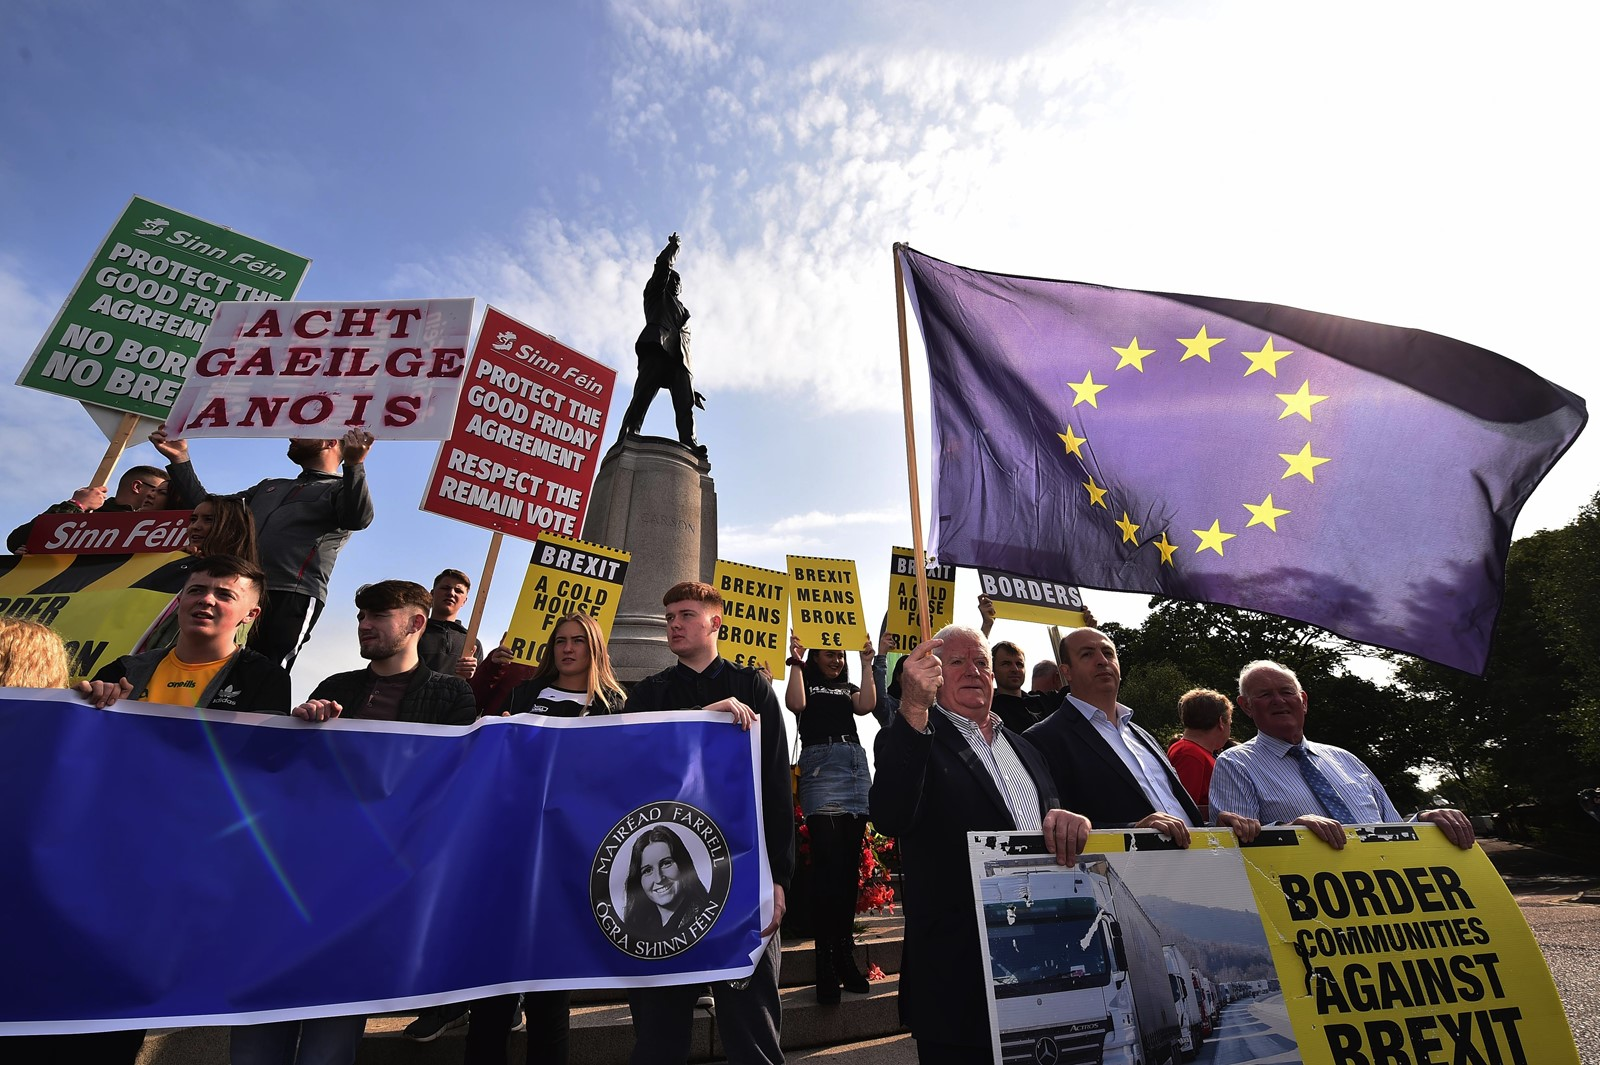 Anti-Brexit demonstrators gather in Belfast as British Prime Minister Boris Johnson visits Stormont, the seat of government in Northern Ireland. — Photograph: Charles McQuillan/Getty Images.